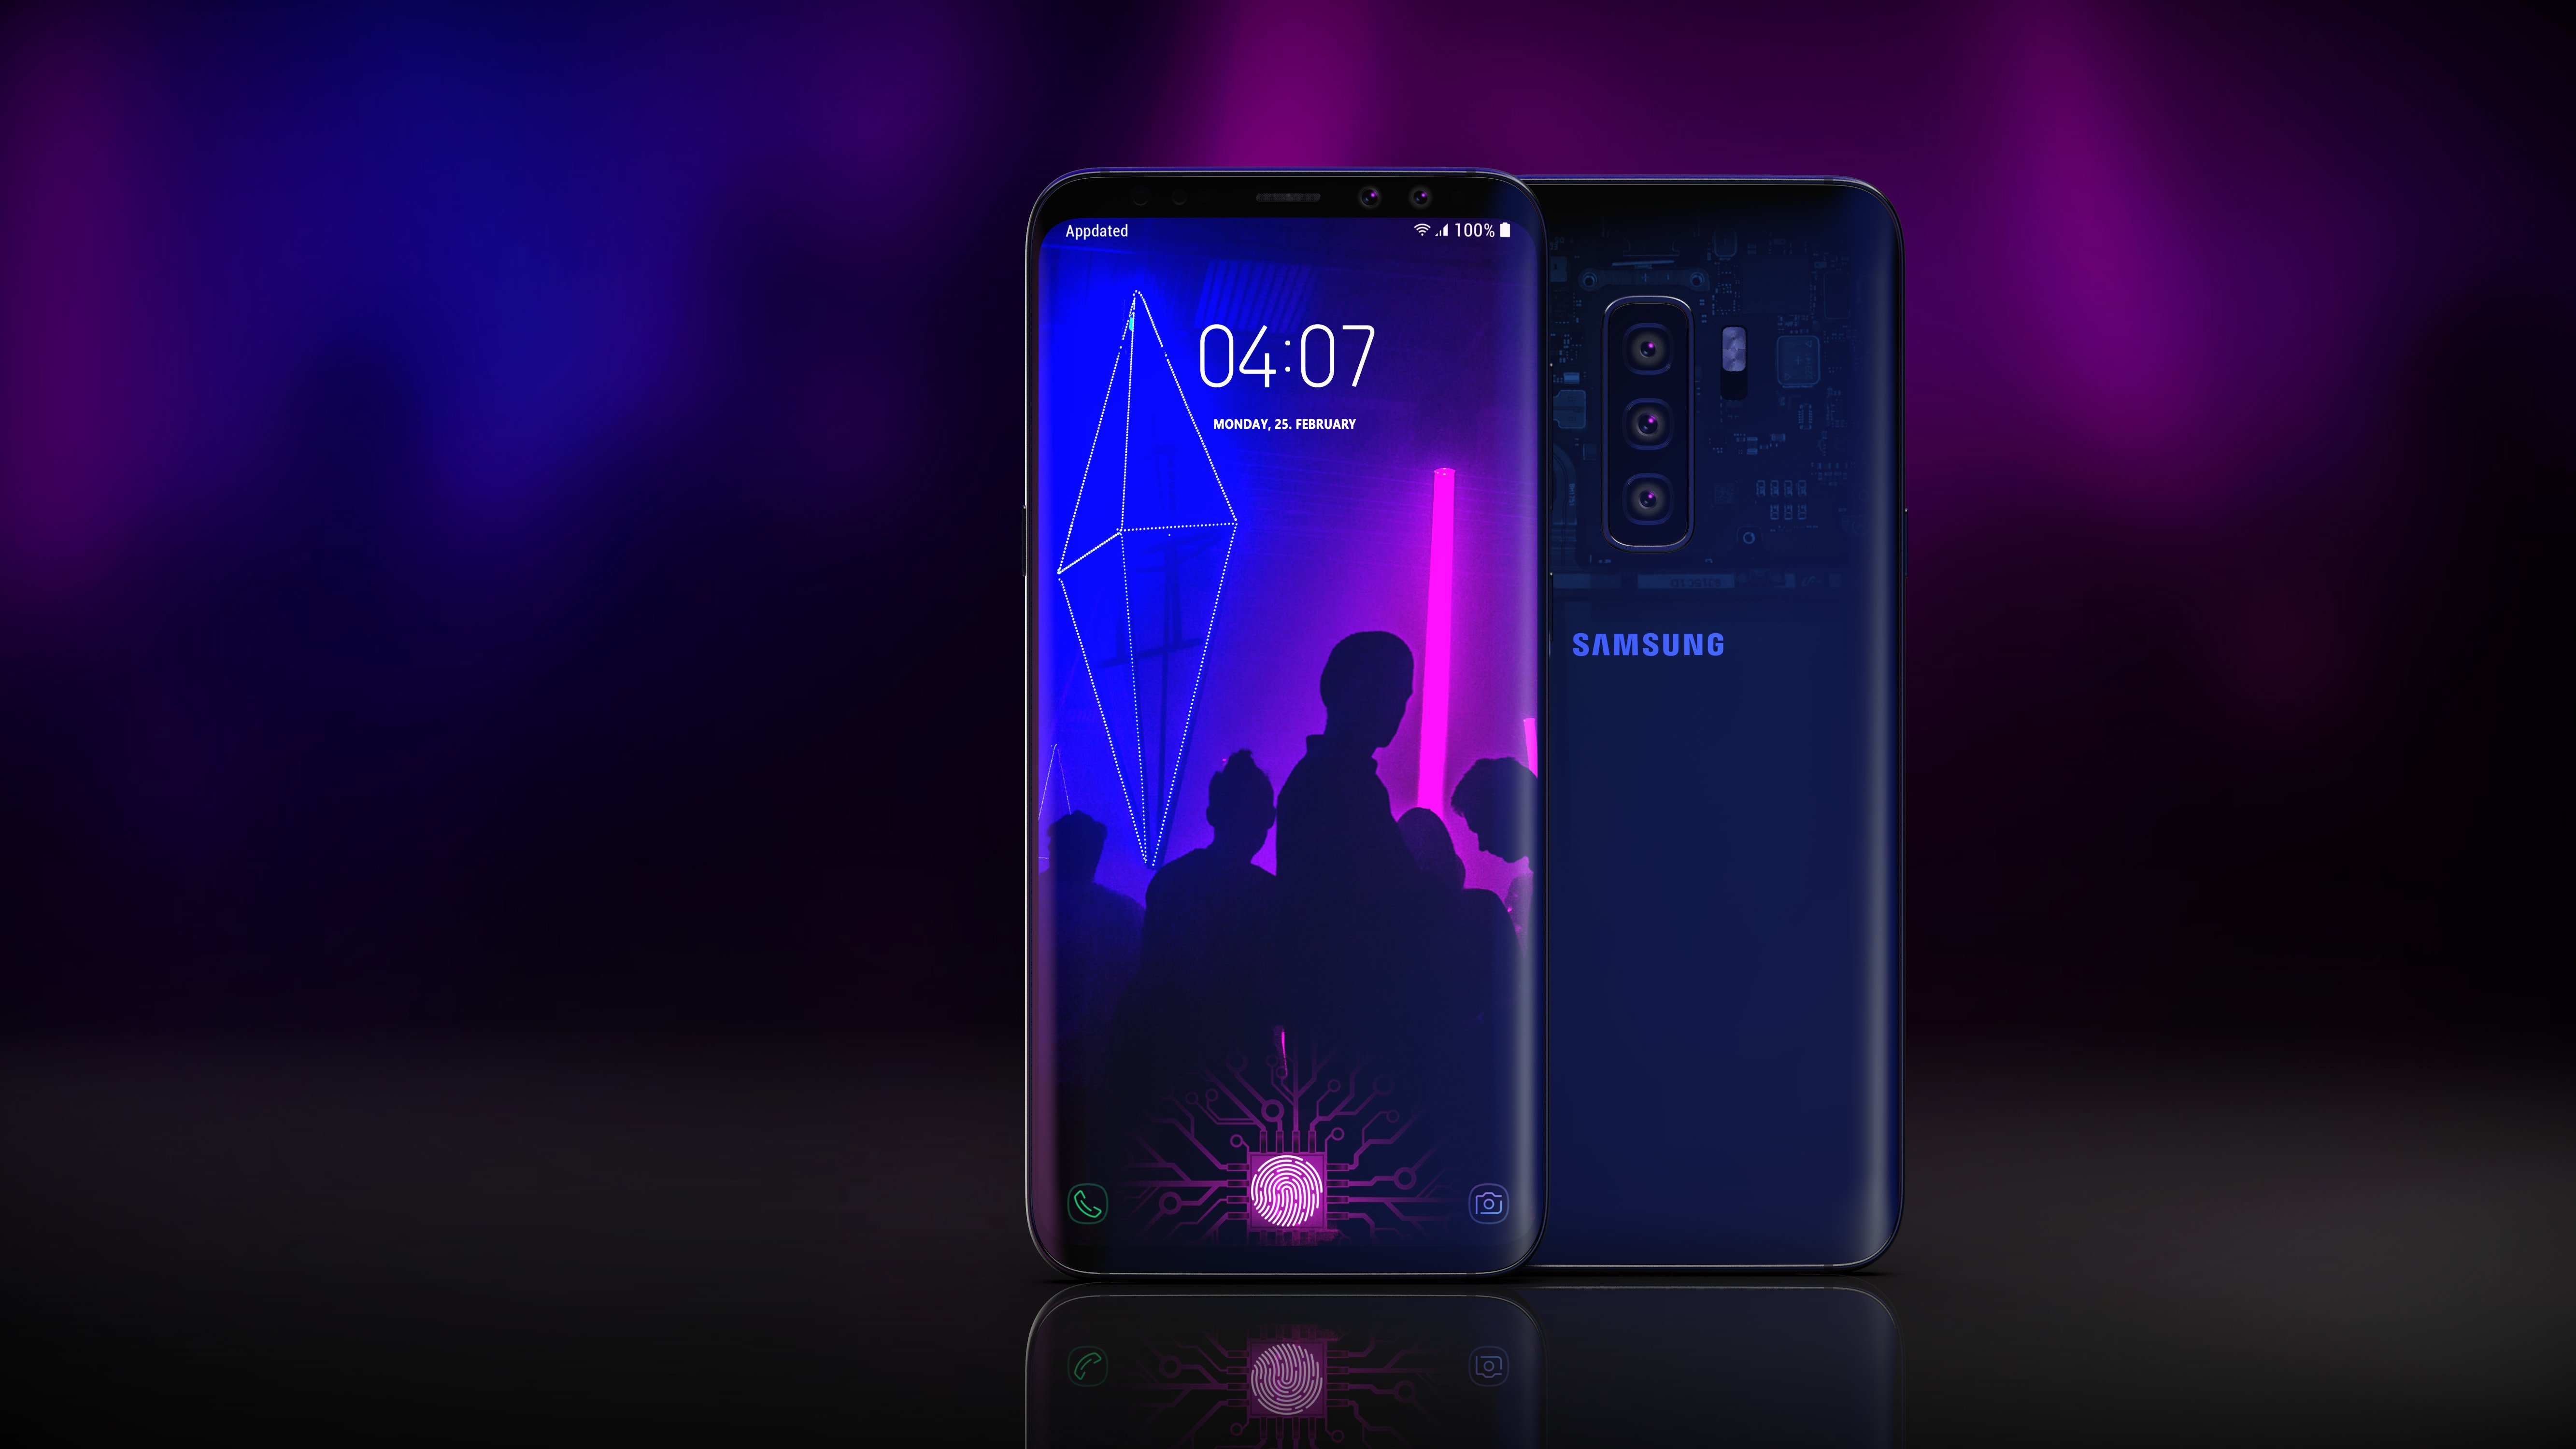 Samsung Galaxy S10 release date, price, specs and rumors